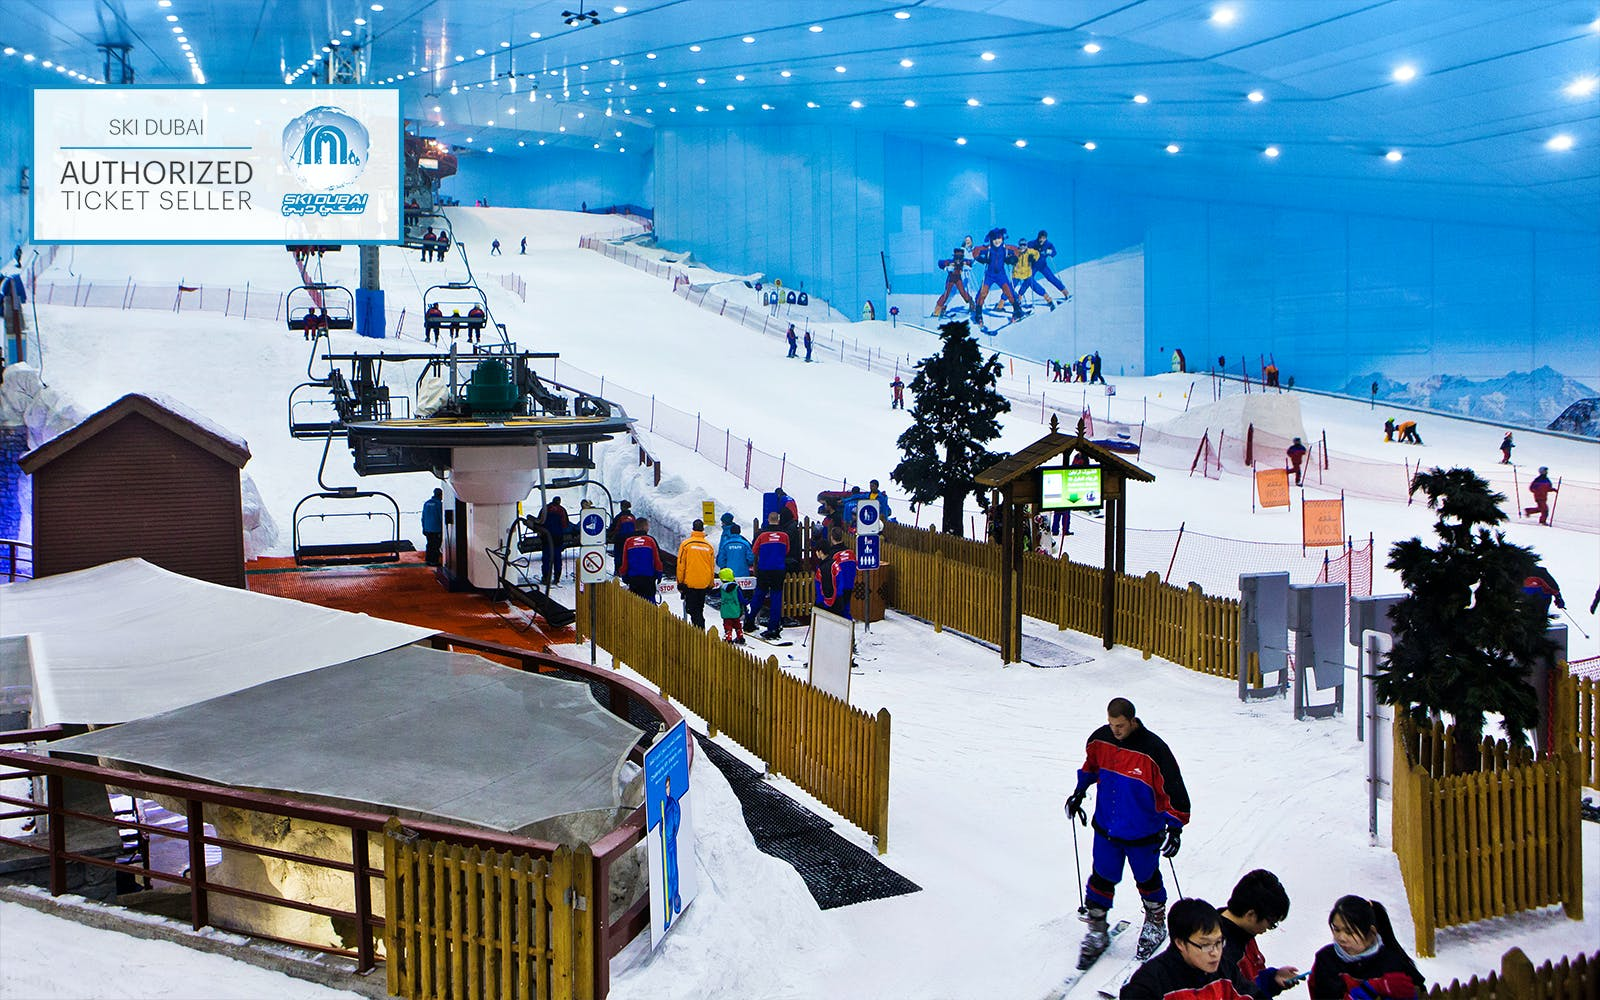 Ski Dubai: 2 Hour Skiing Session